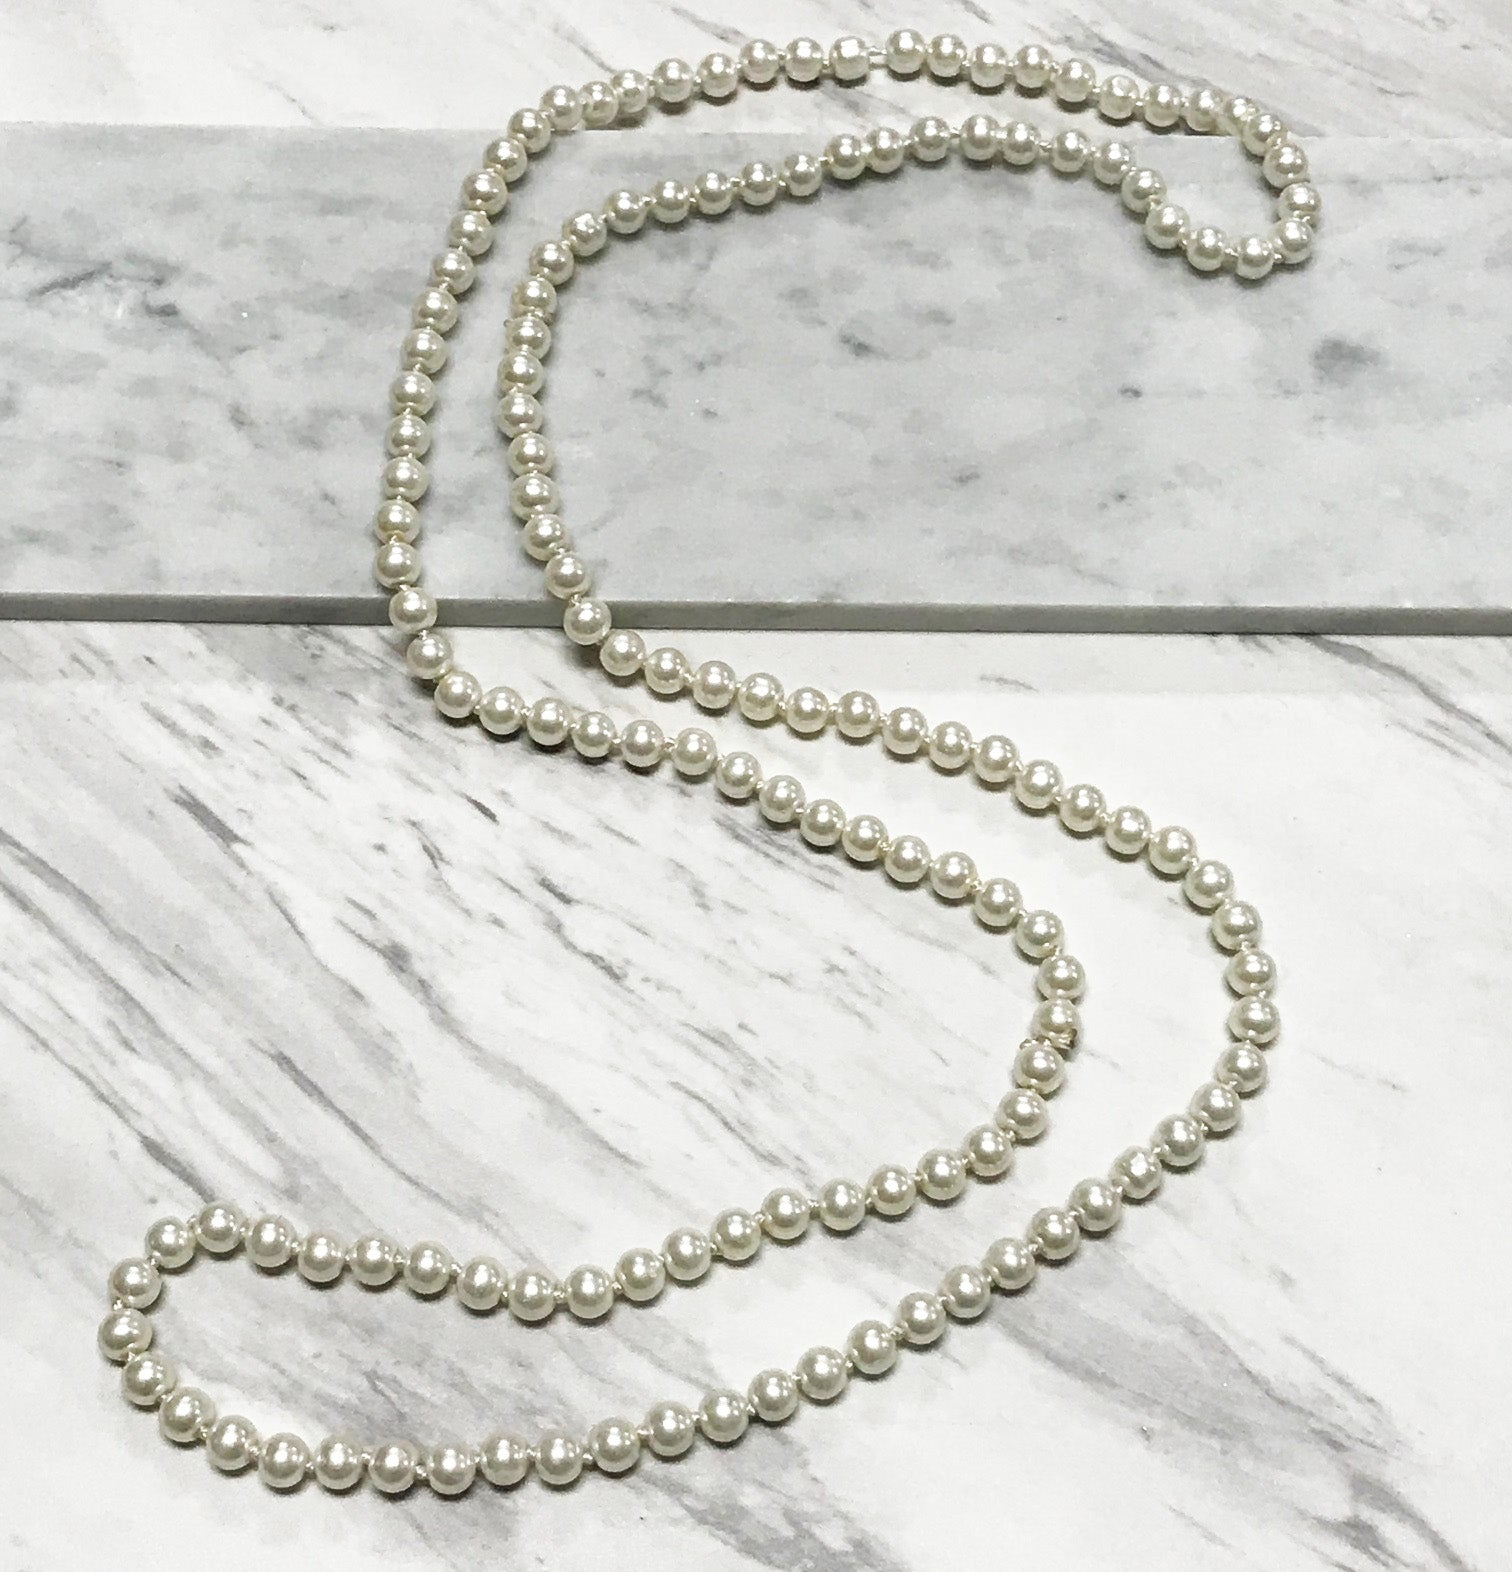 Barbara Pearl Necklace